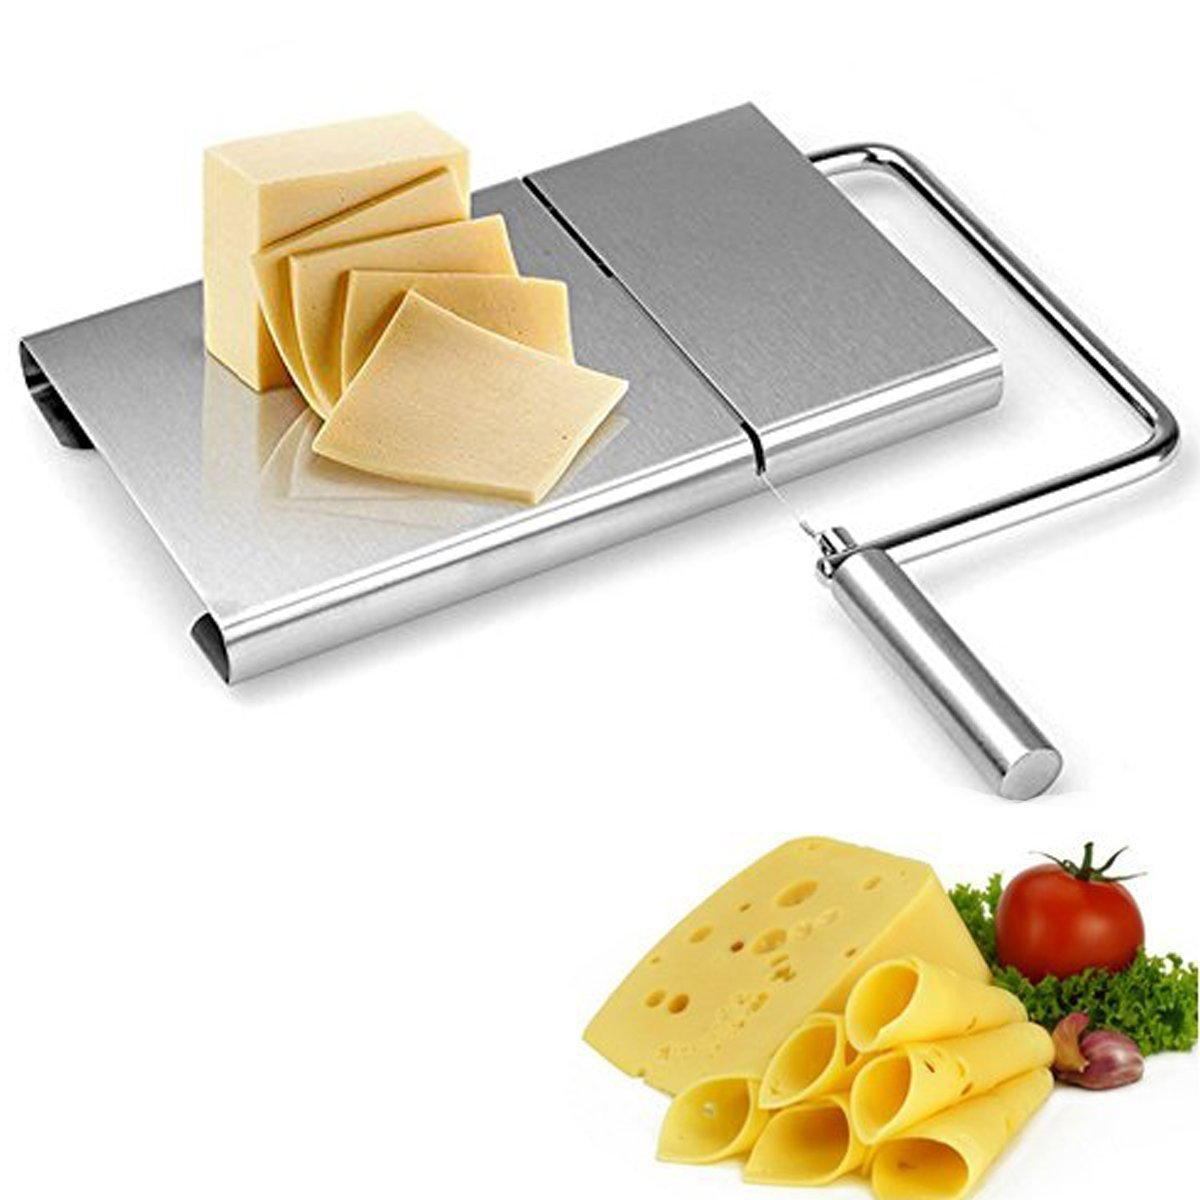 Cheese Slicer Stainless Steel Wire Cutter With Serving Board for Hard and Semi Hard Cheese Butter